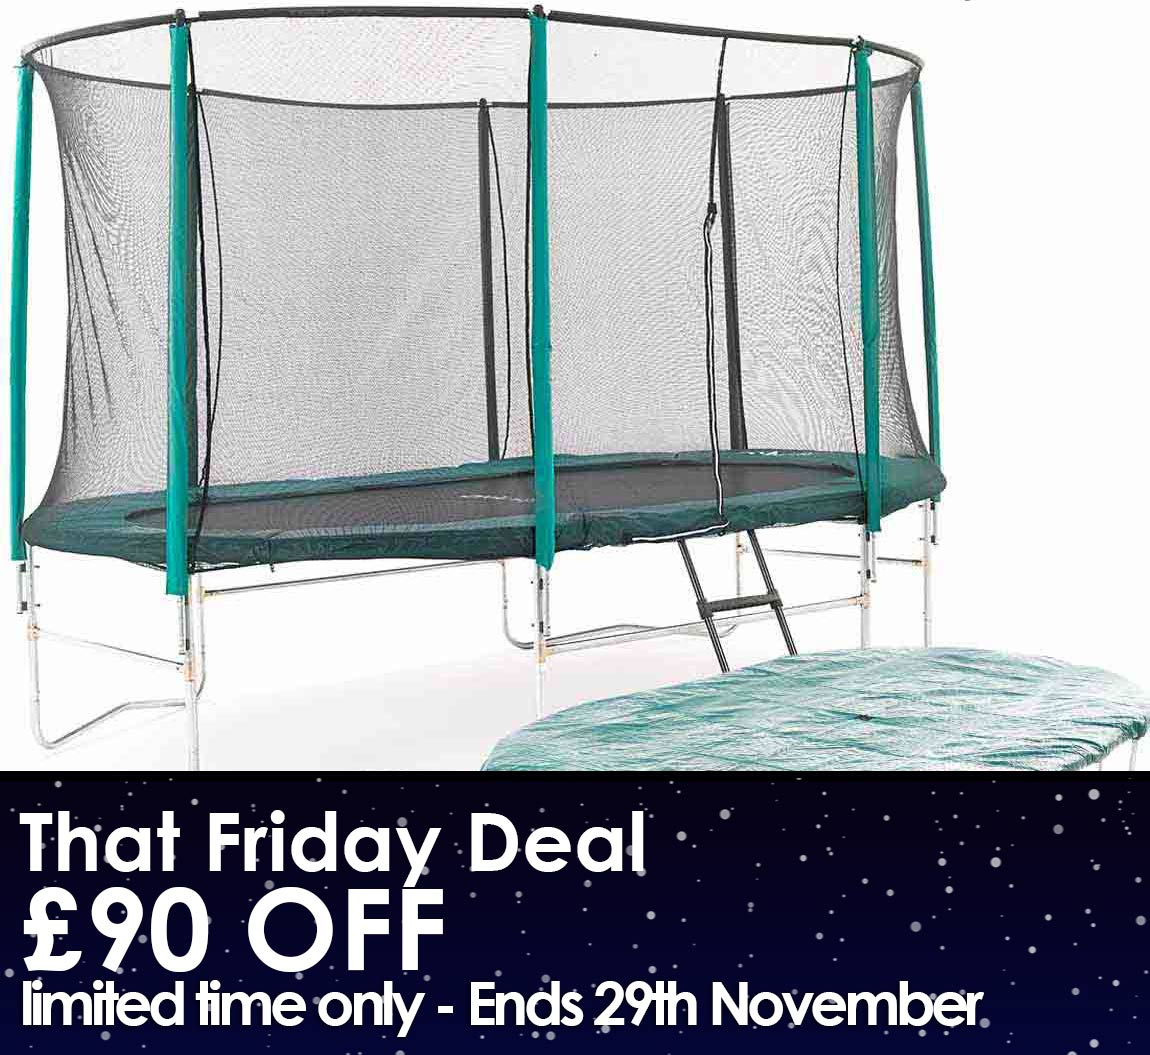 10ft x 15ft Oval Trampoline Package